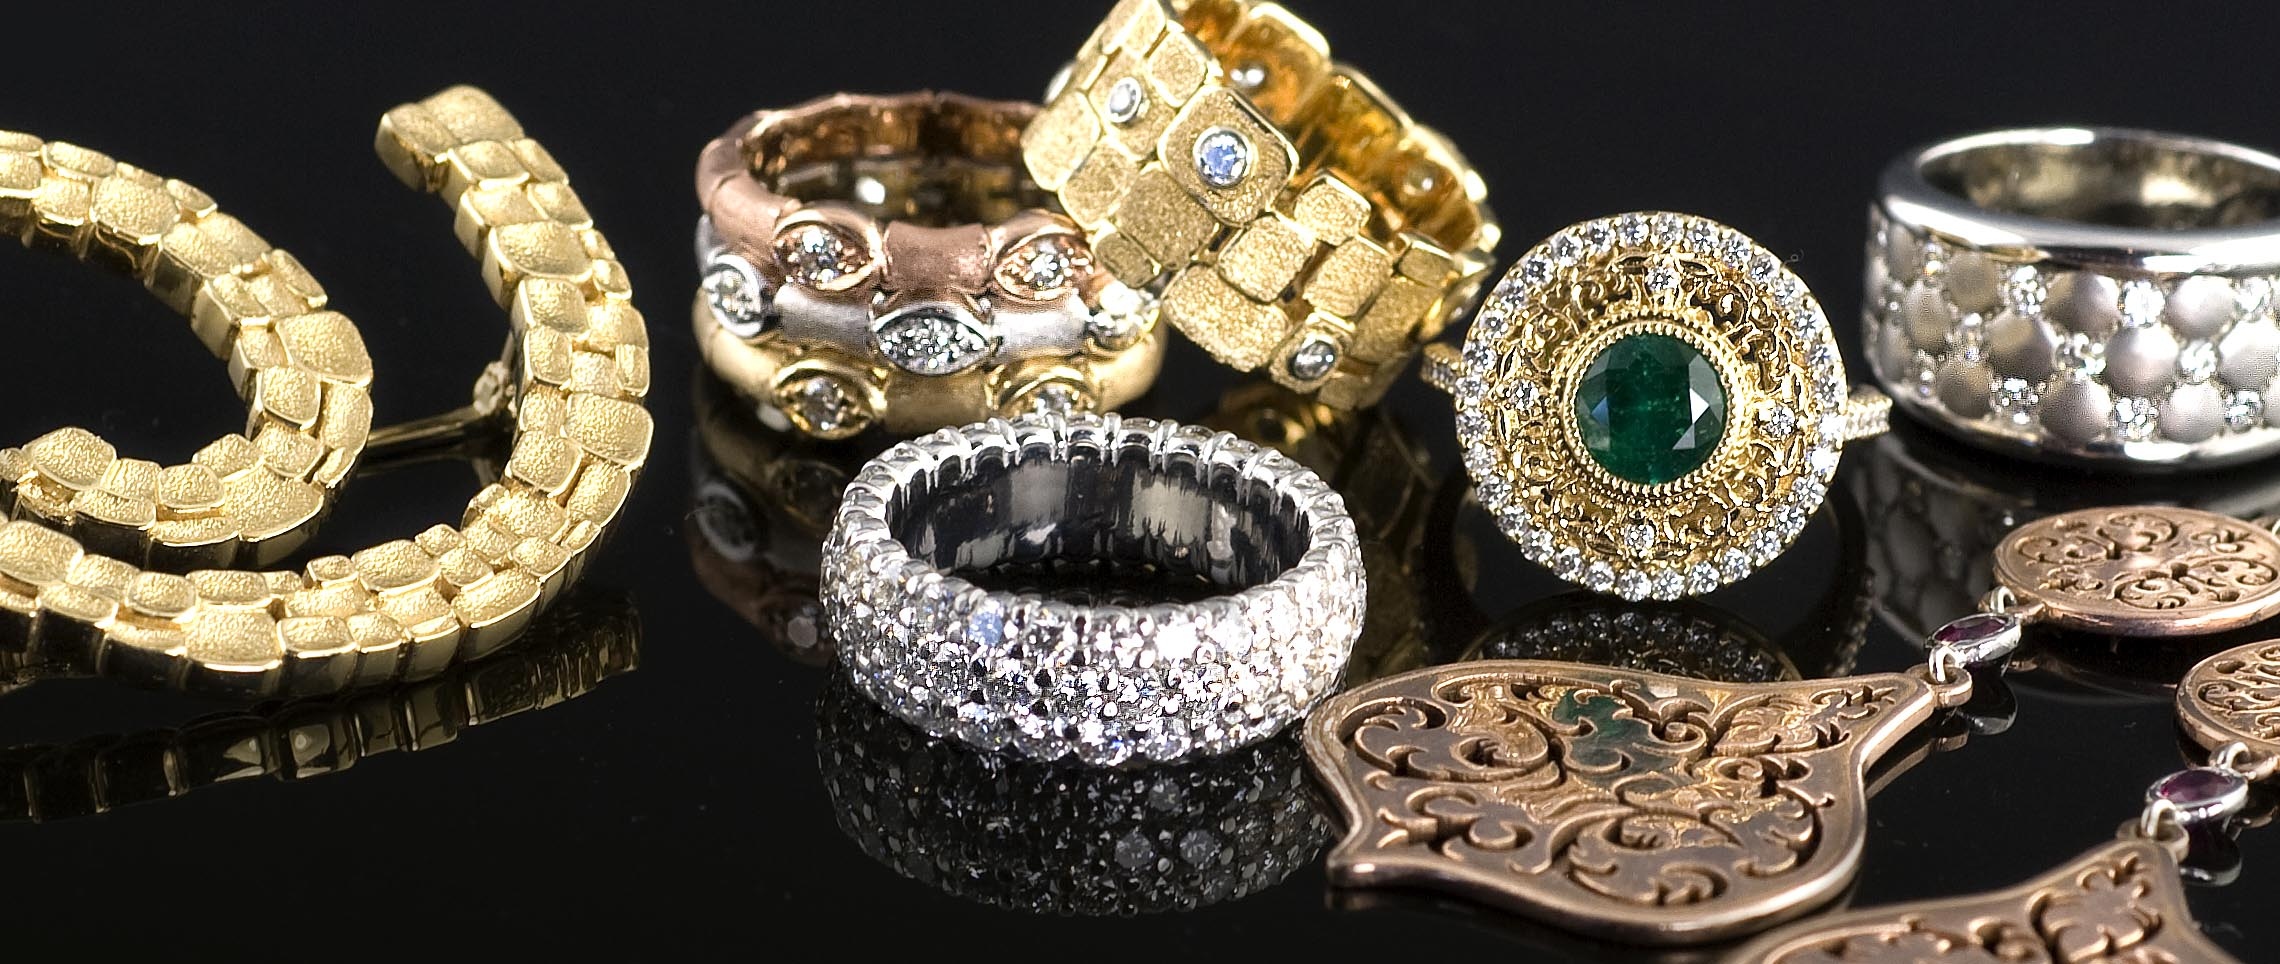 Krombholz Jewelers has established a 70 year reputation for designing and creating jewelry that has been coveted for generations and shipped all over the world. Their staff includes award winning designers, experienced jewelers and sales associaties. They are all waiting to assist you personally